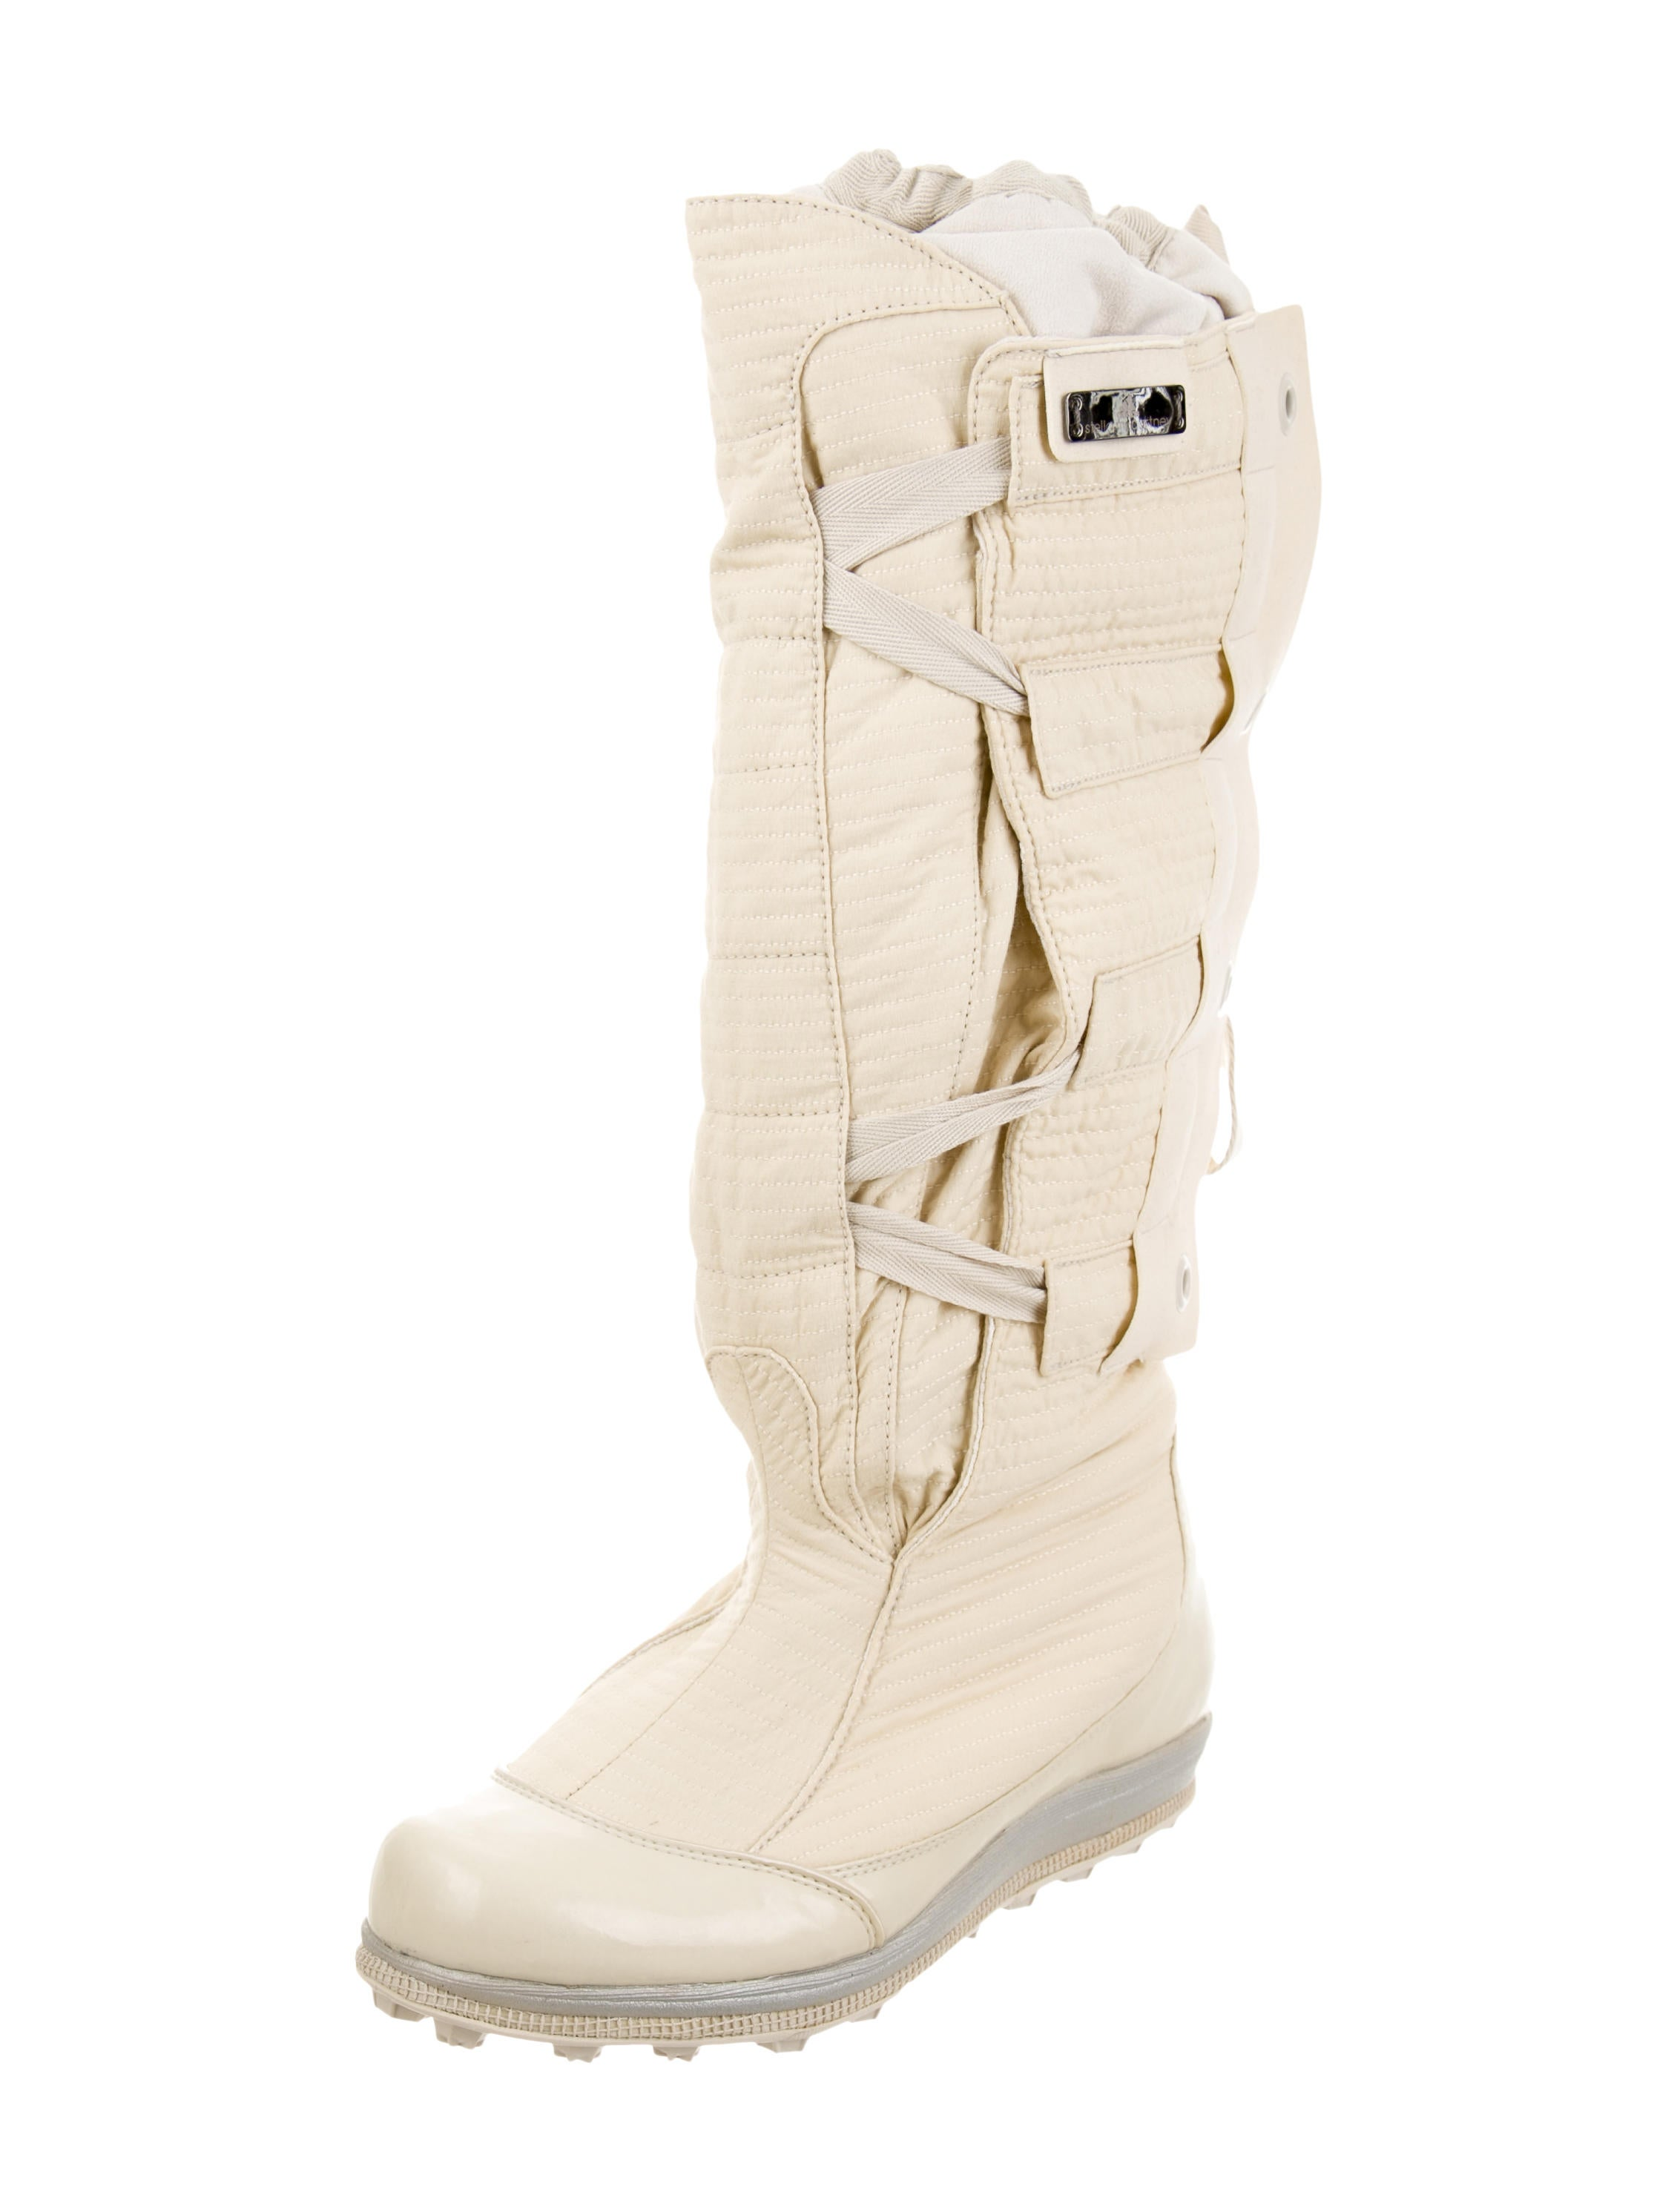 stella mccartney for adidas knee high weather boots